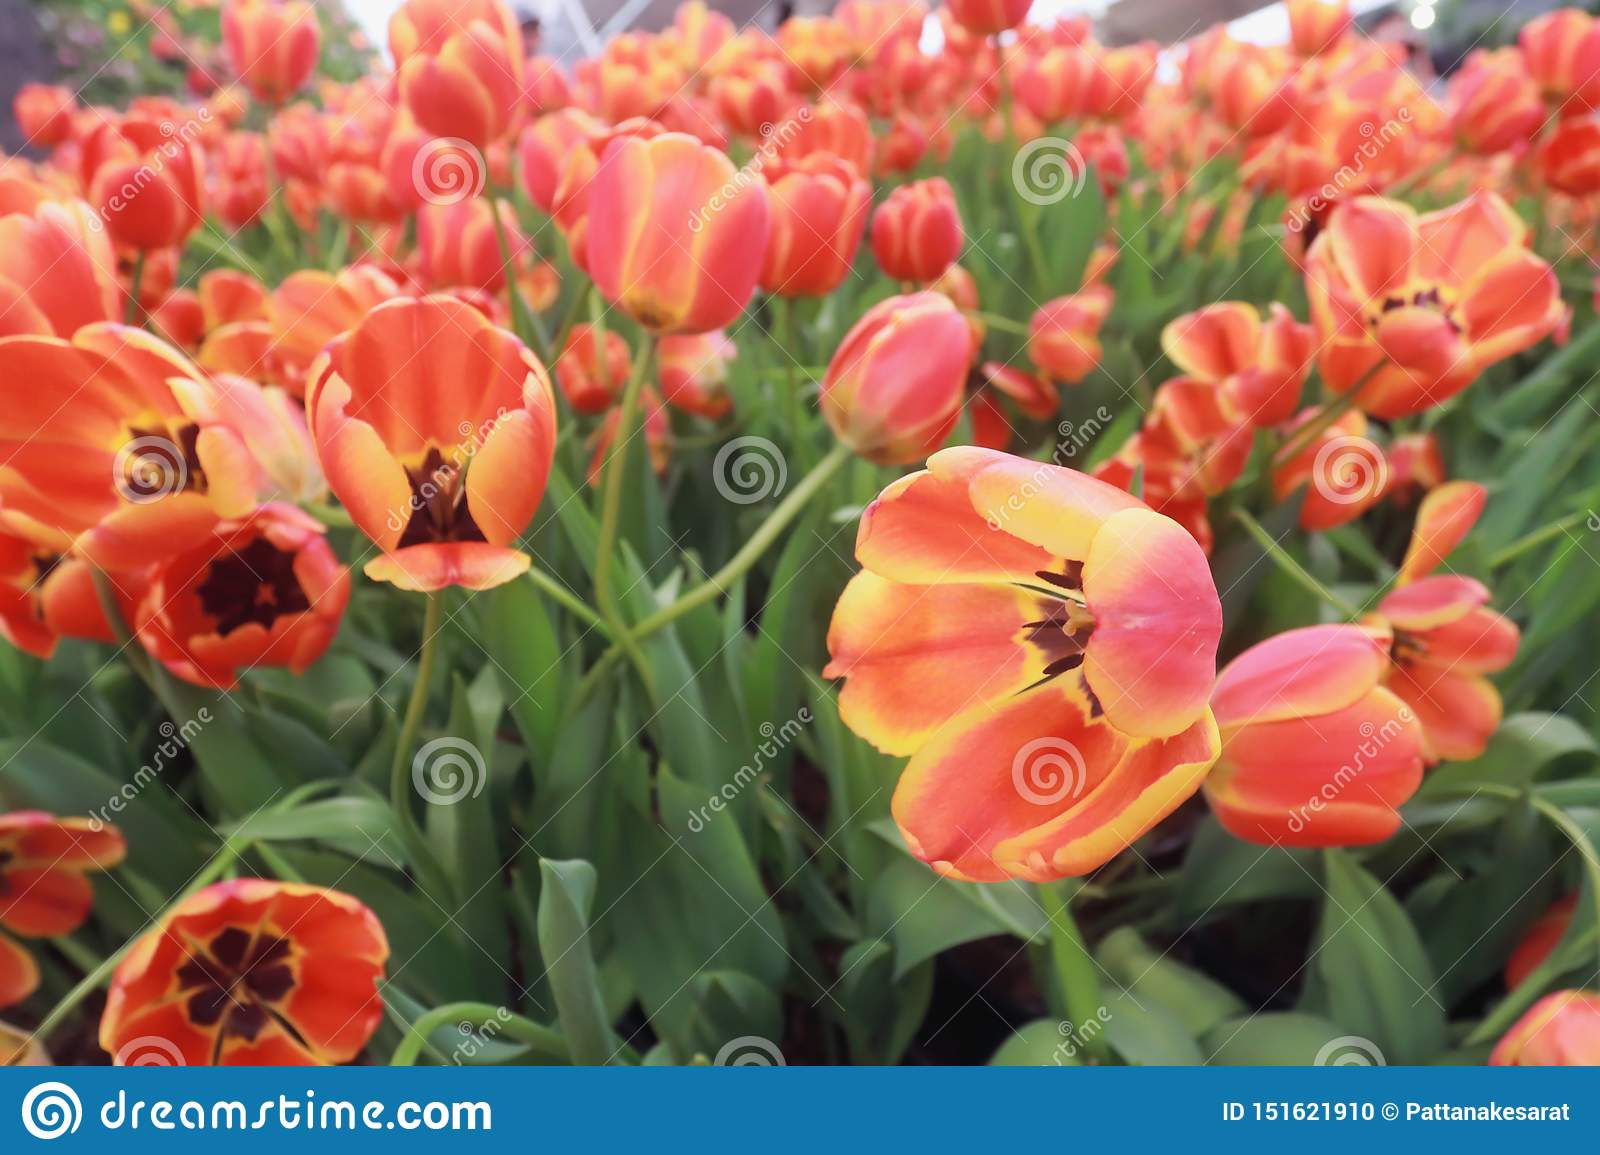 Tulips are blooming in the garden